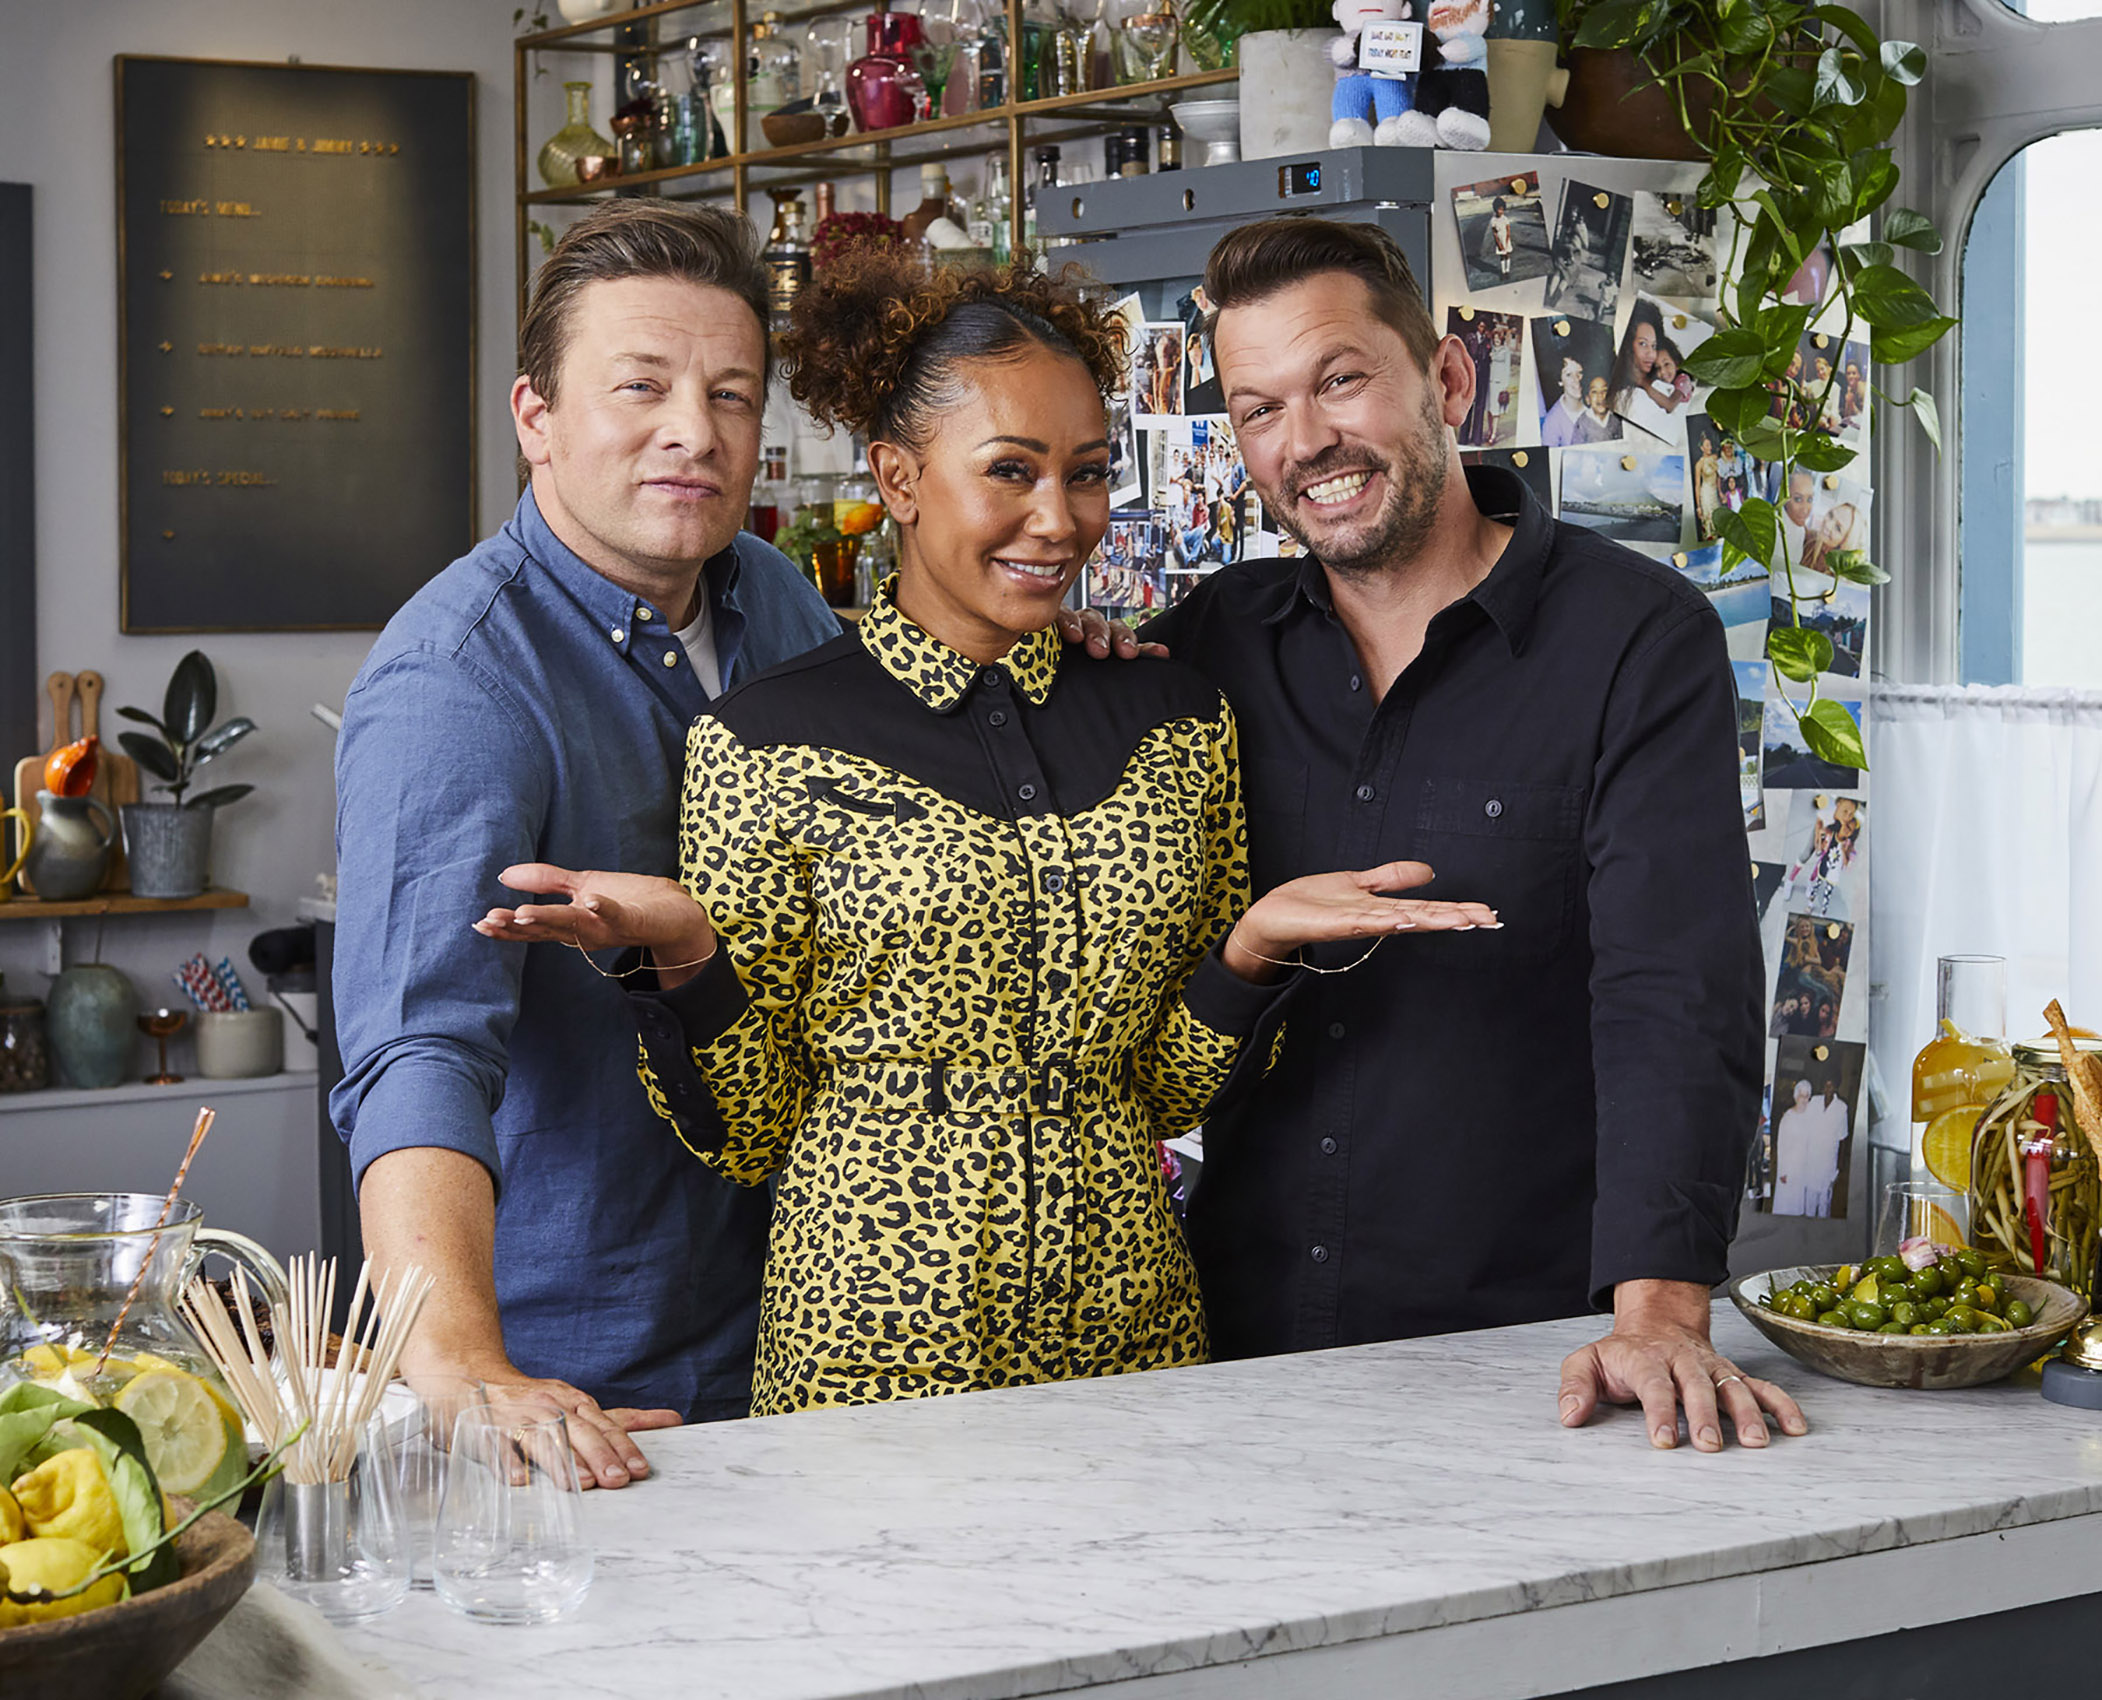 SteveRyan_Photographer_Portraits_People_FridaynightFeast_JamieOliver_MelB_JimmyDoherty_87